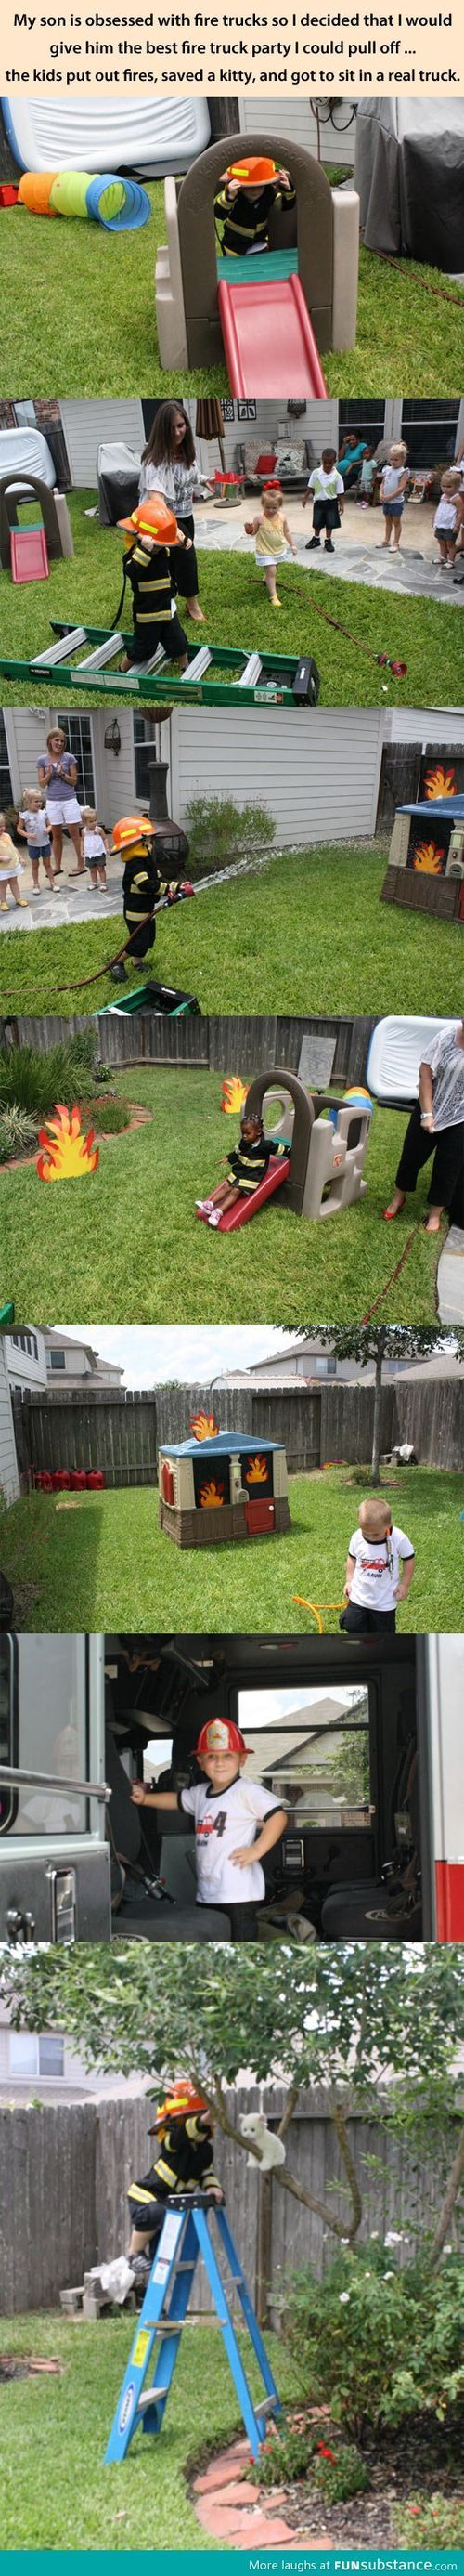 Fireman birthday party - Best idea ever!!! So cute!!!!